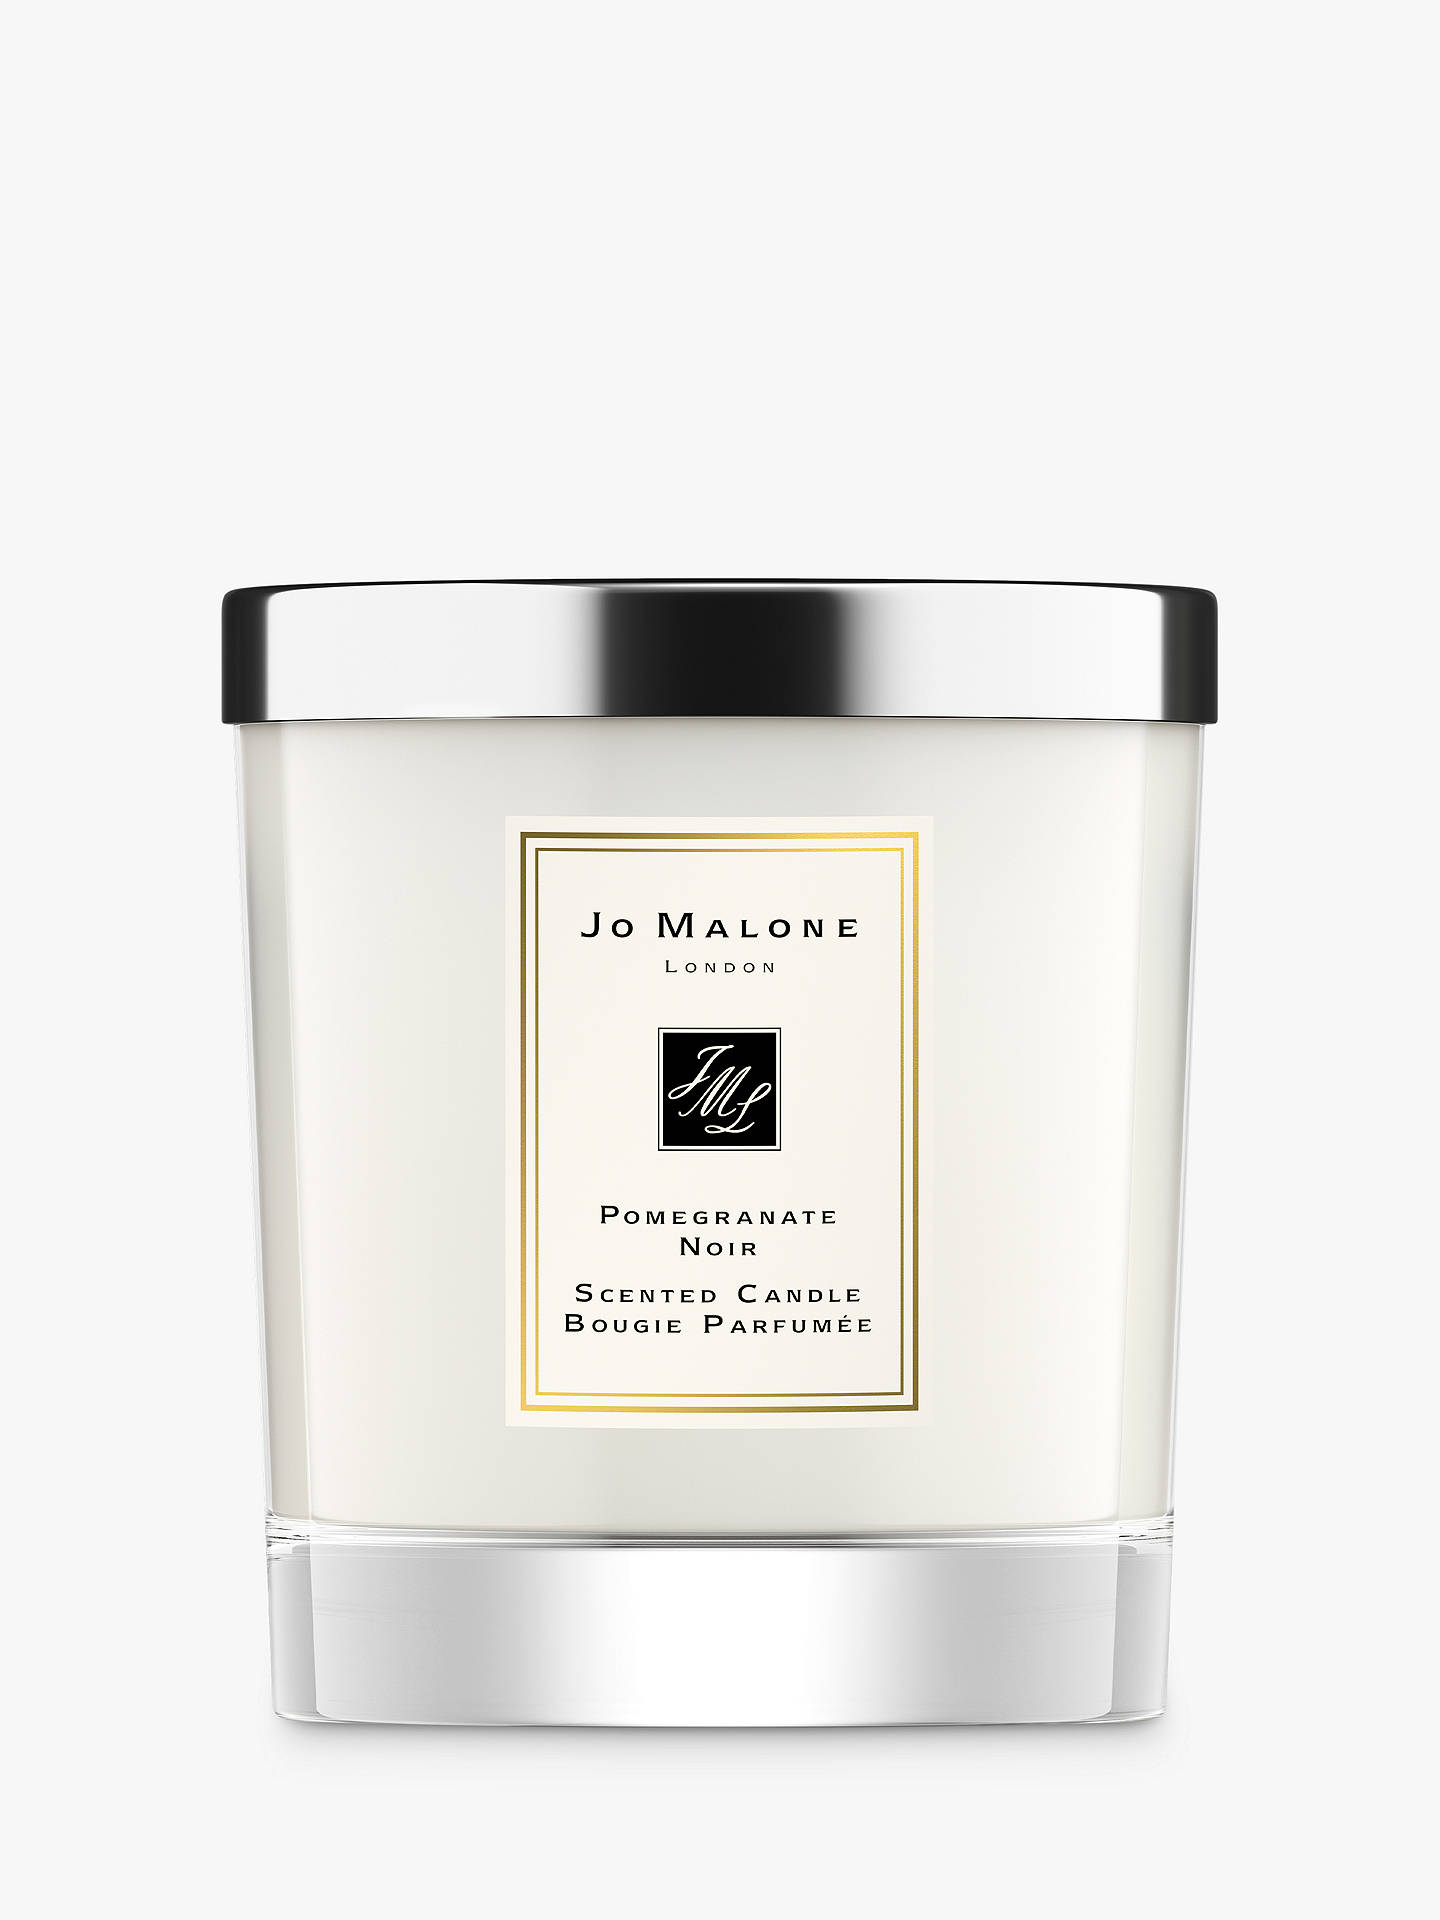 Buy Jo Malone London Pomegranate Noir Home Scented Candle, 200g Online at johnlewis.com